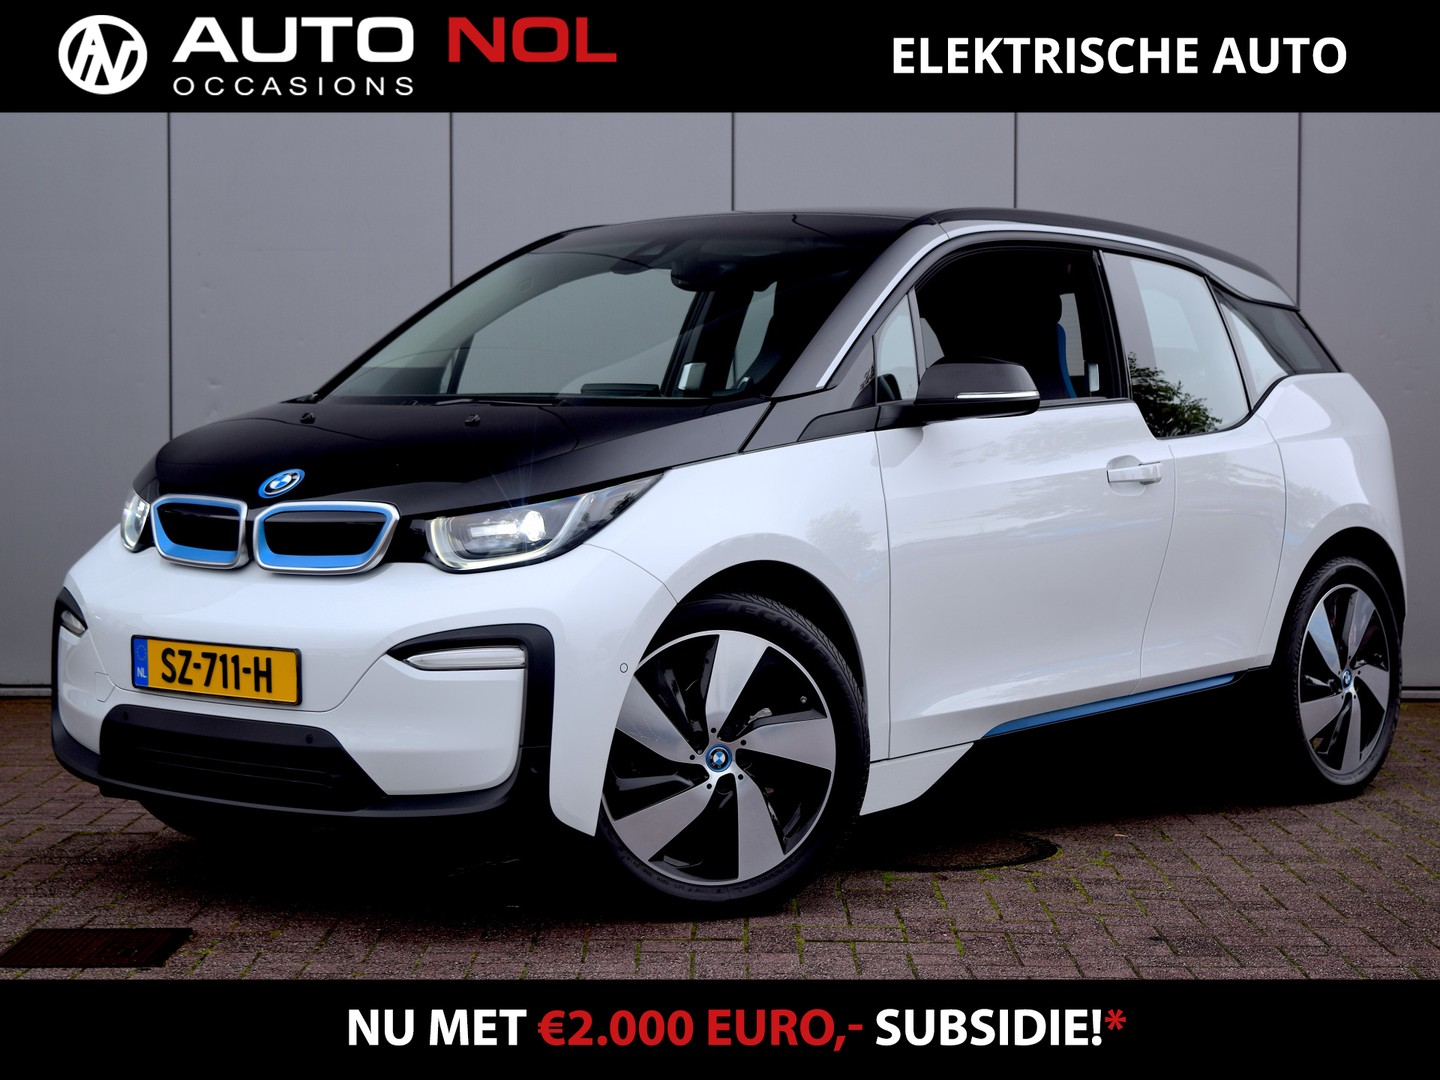 Bmw I3 Basis iperformance 94ah 33 kwh excl. btw netto bijtelling €75,- file assistent camera pdc adaptieve cruise clima navi stoelverwarming lm19""